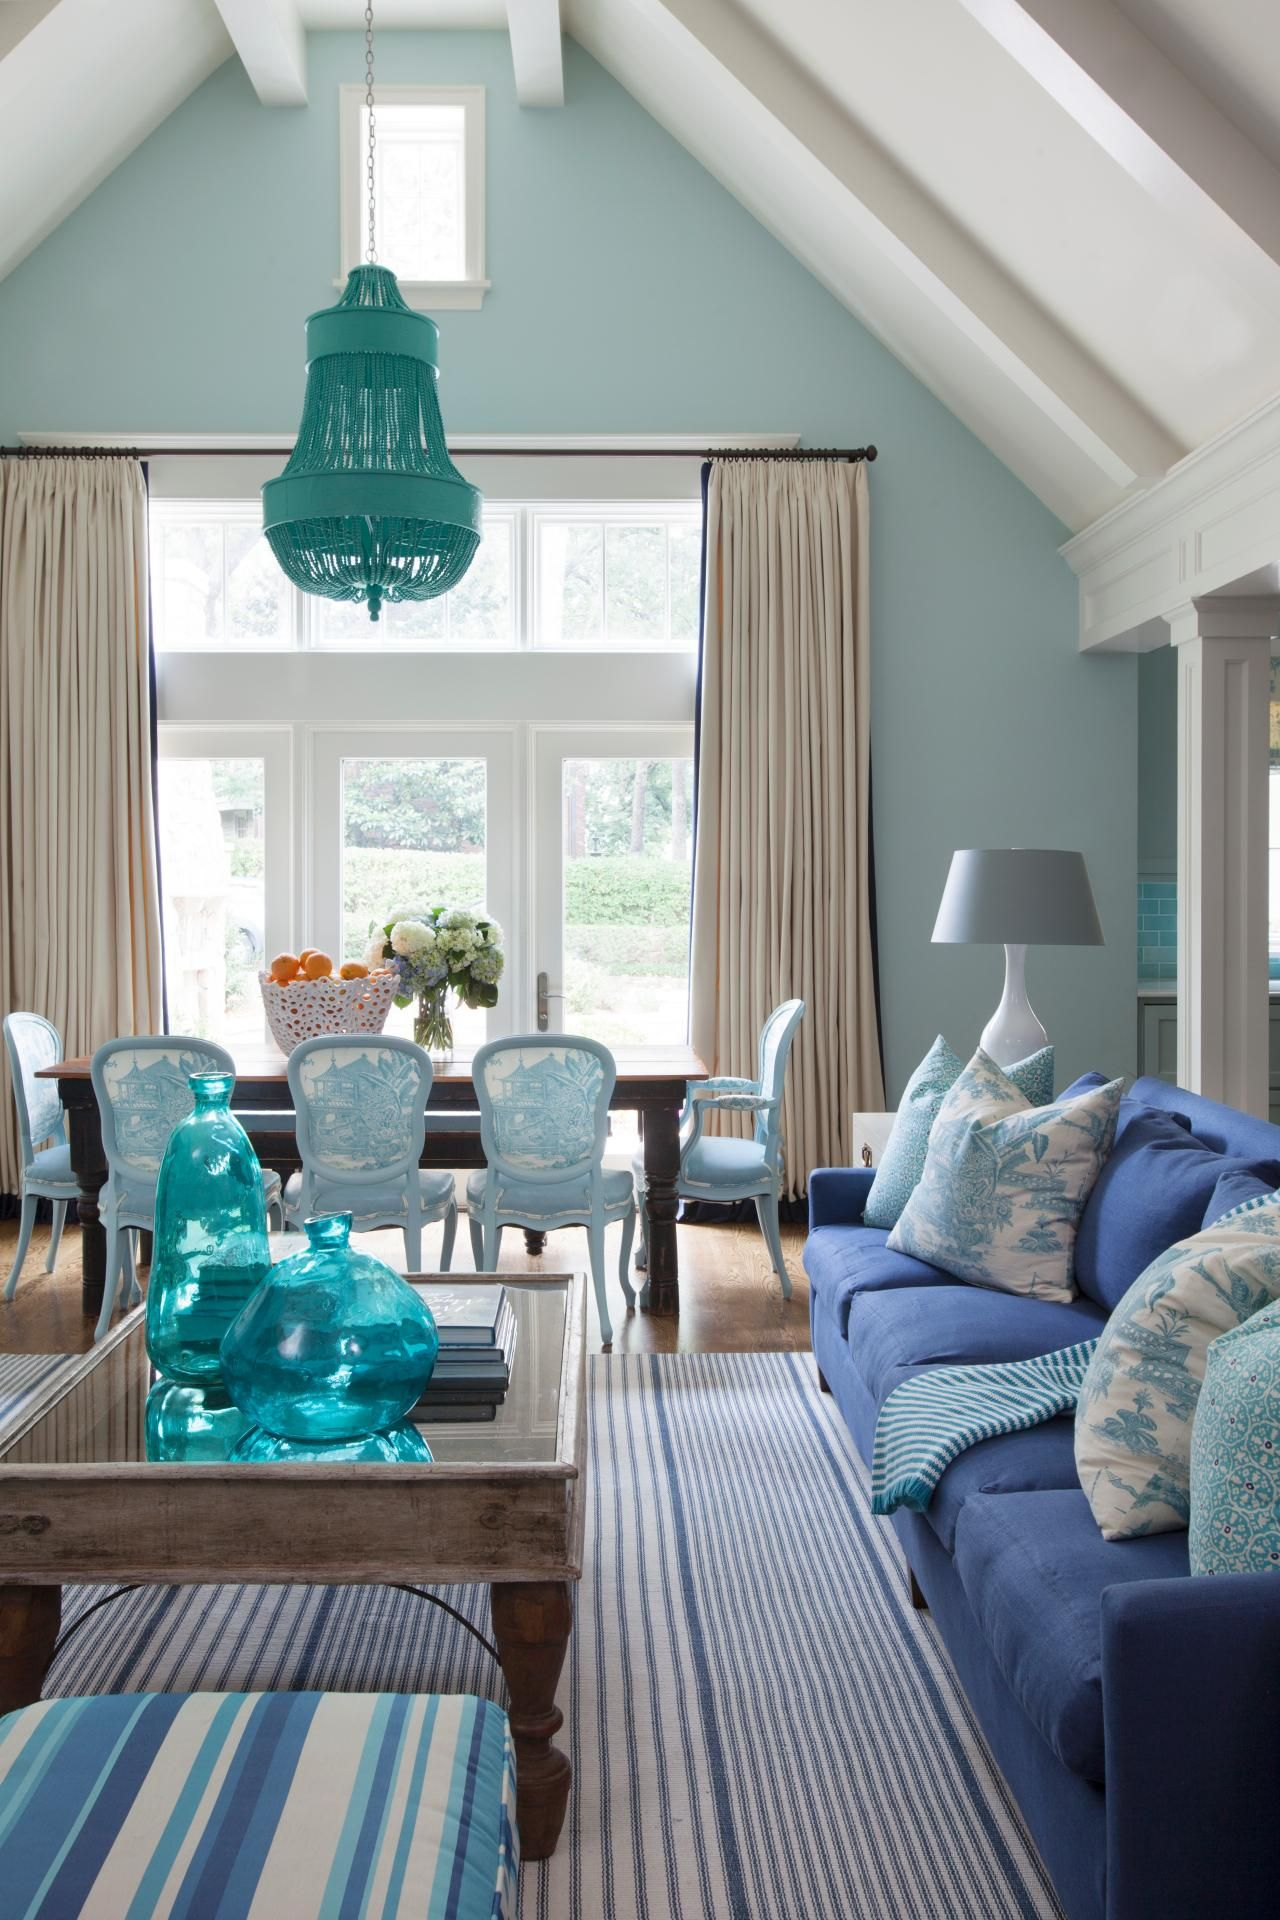 Transitional Living Room With Coastal Vibe And Blue: Let There Be Stripes! This Transitional Open Concept